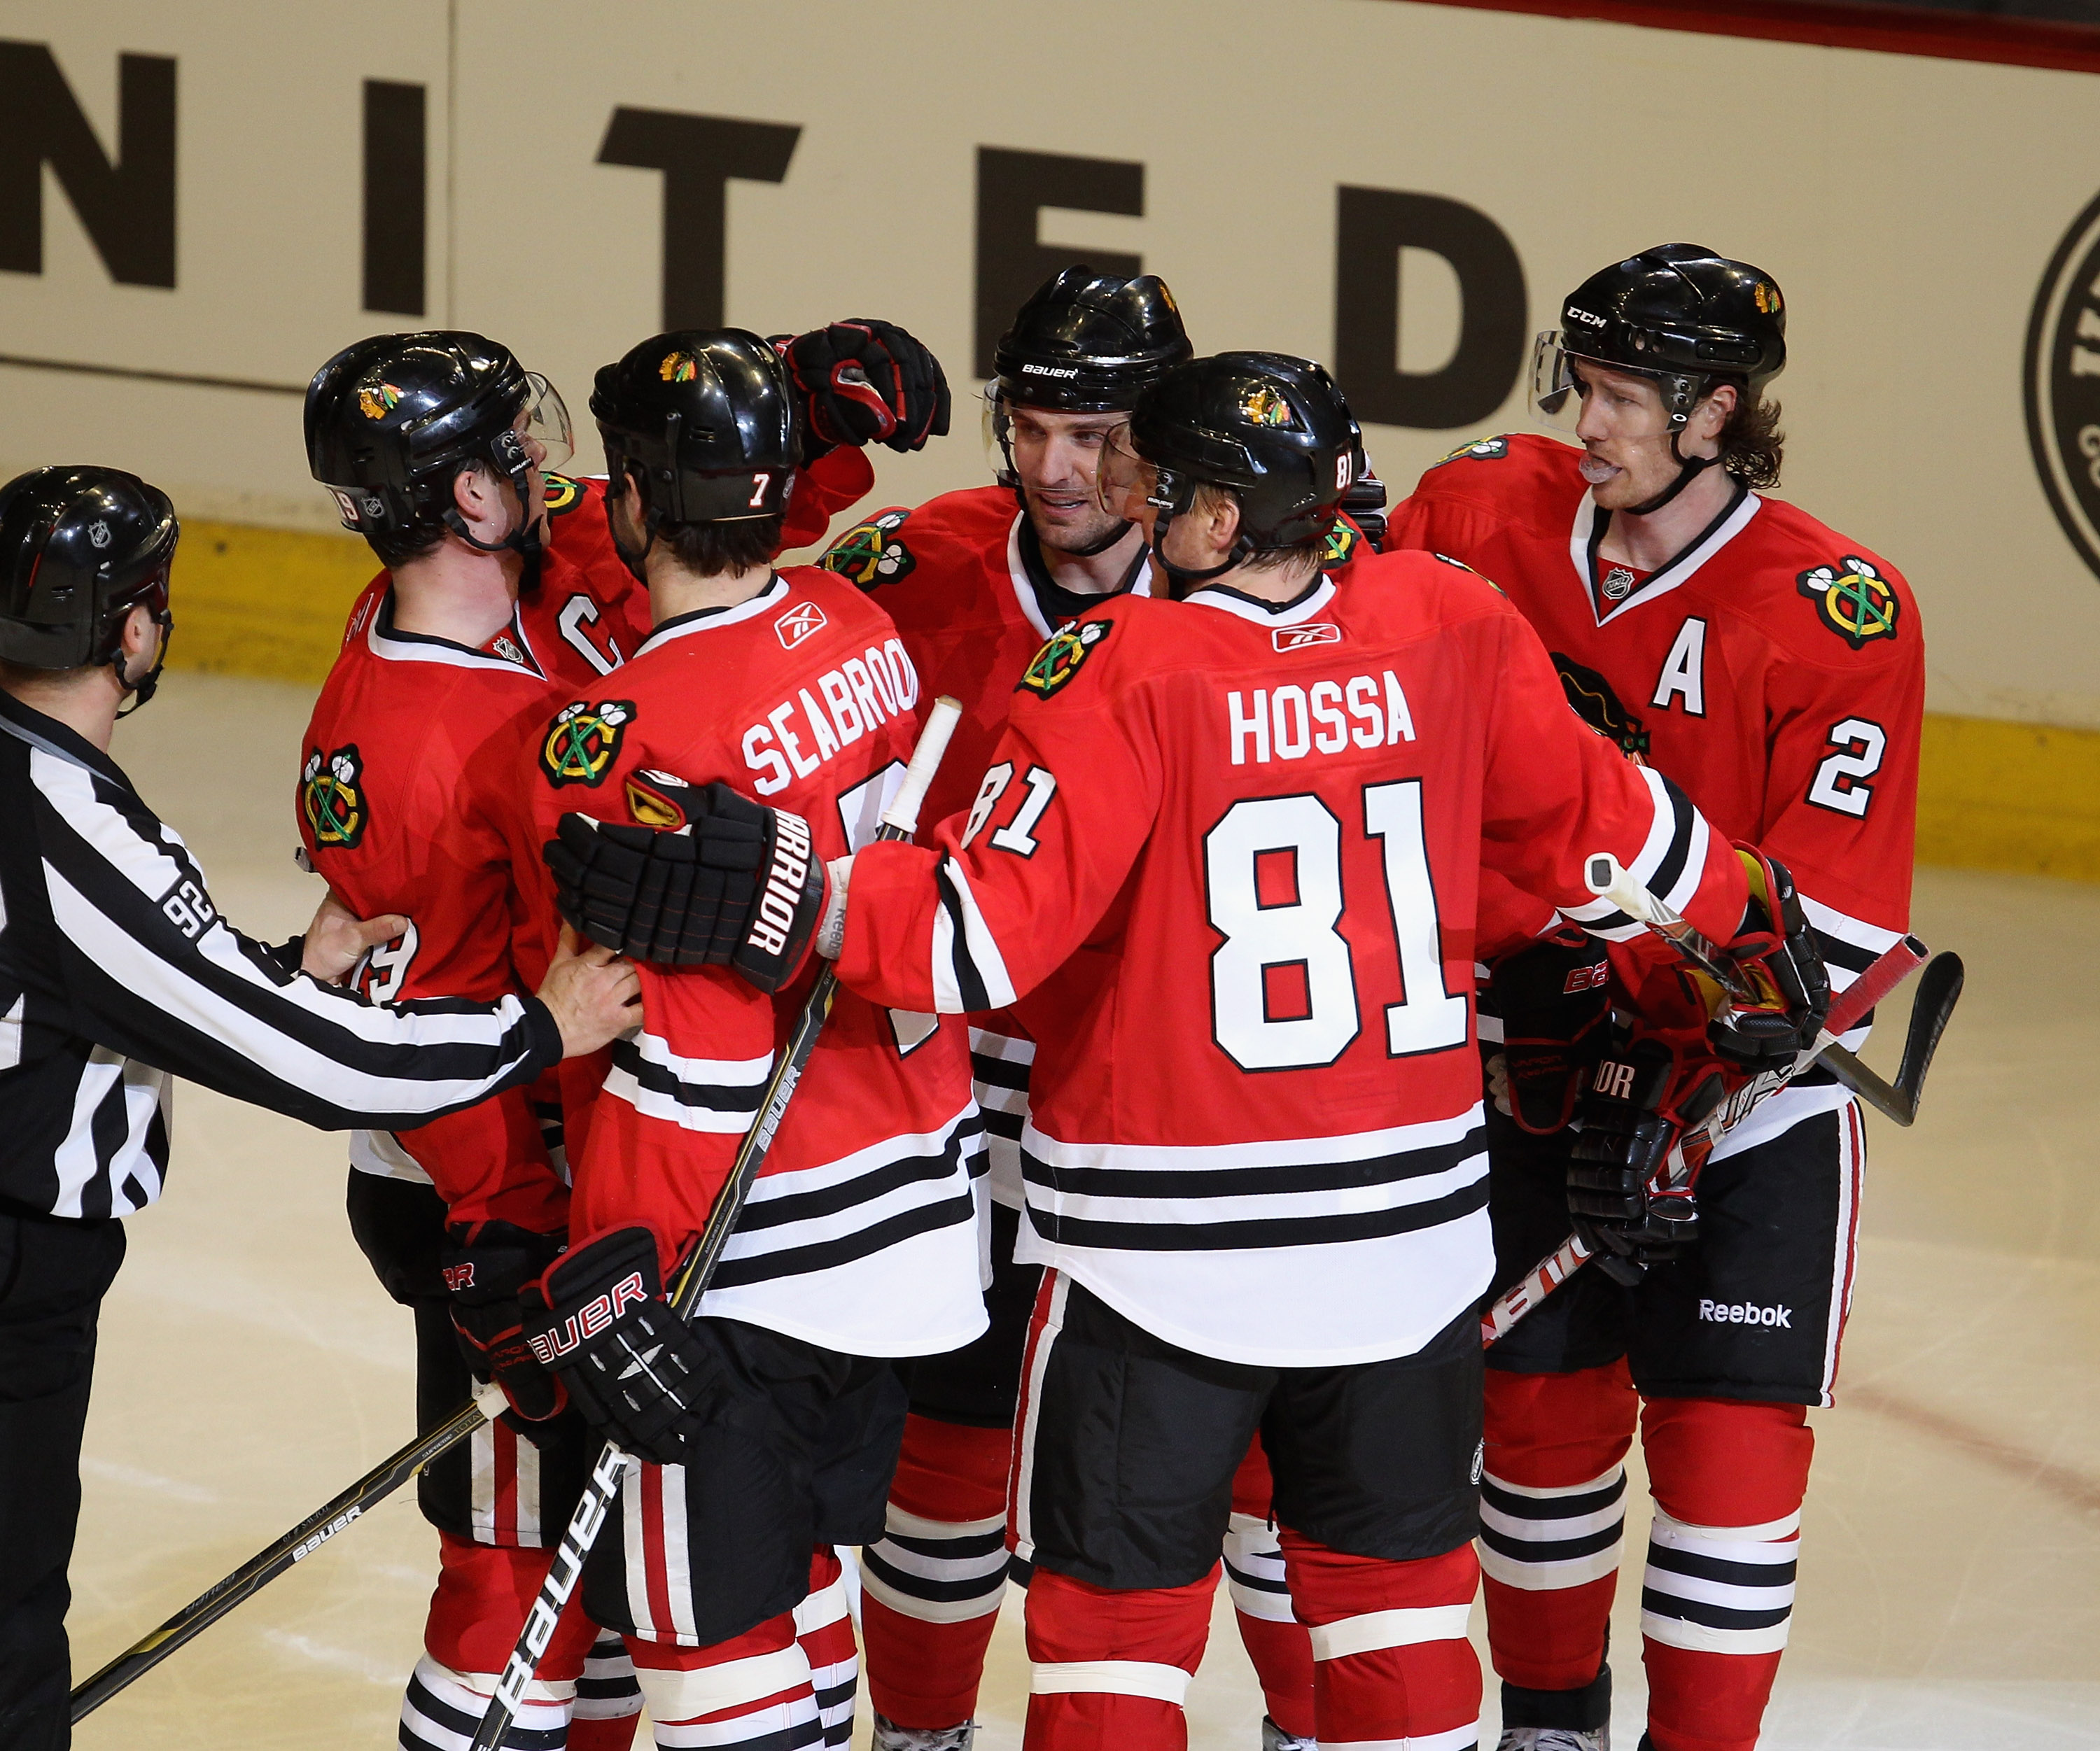 CHICAGO, IL - APRIL 10: (L-R) Jonathan Toews #19, Brent Seabrook #7, Patrick Sharp #10, Marian Hossa #81 and Duncan Keith #2 of the Chicago Blackhawks celebrate keiths' 3rd period goal against the Detroit Red Wings at the United Center on April 10, 2011 i